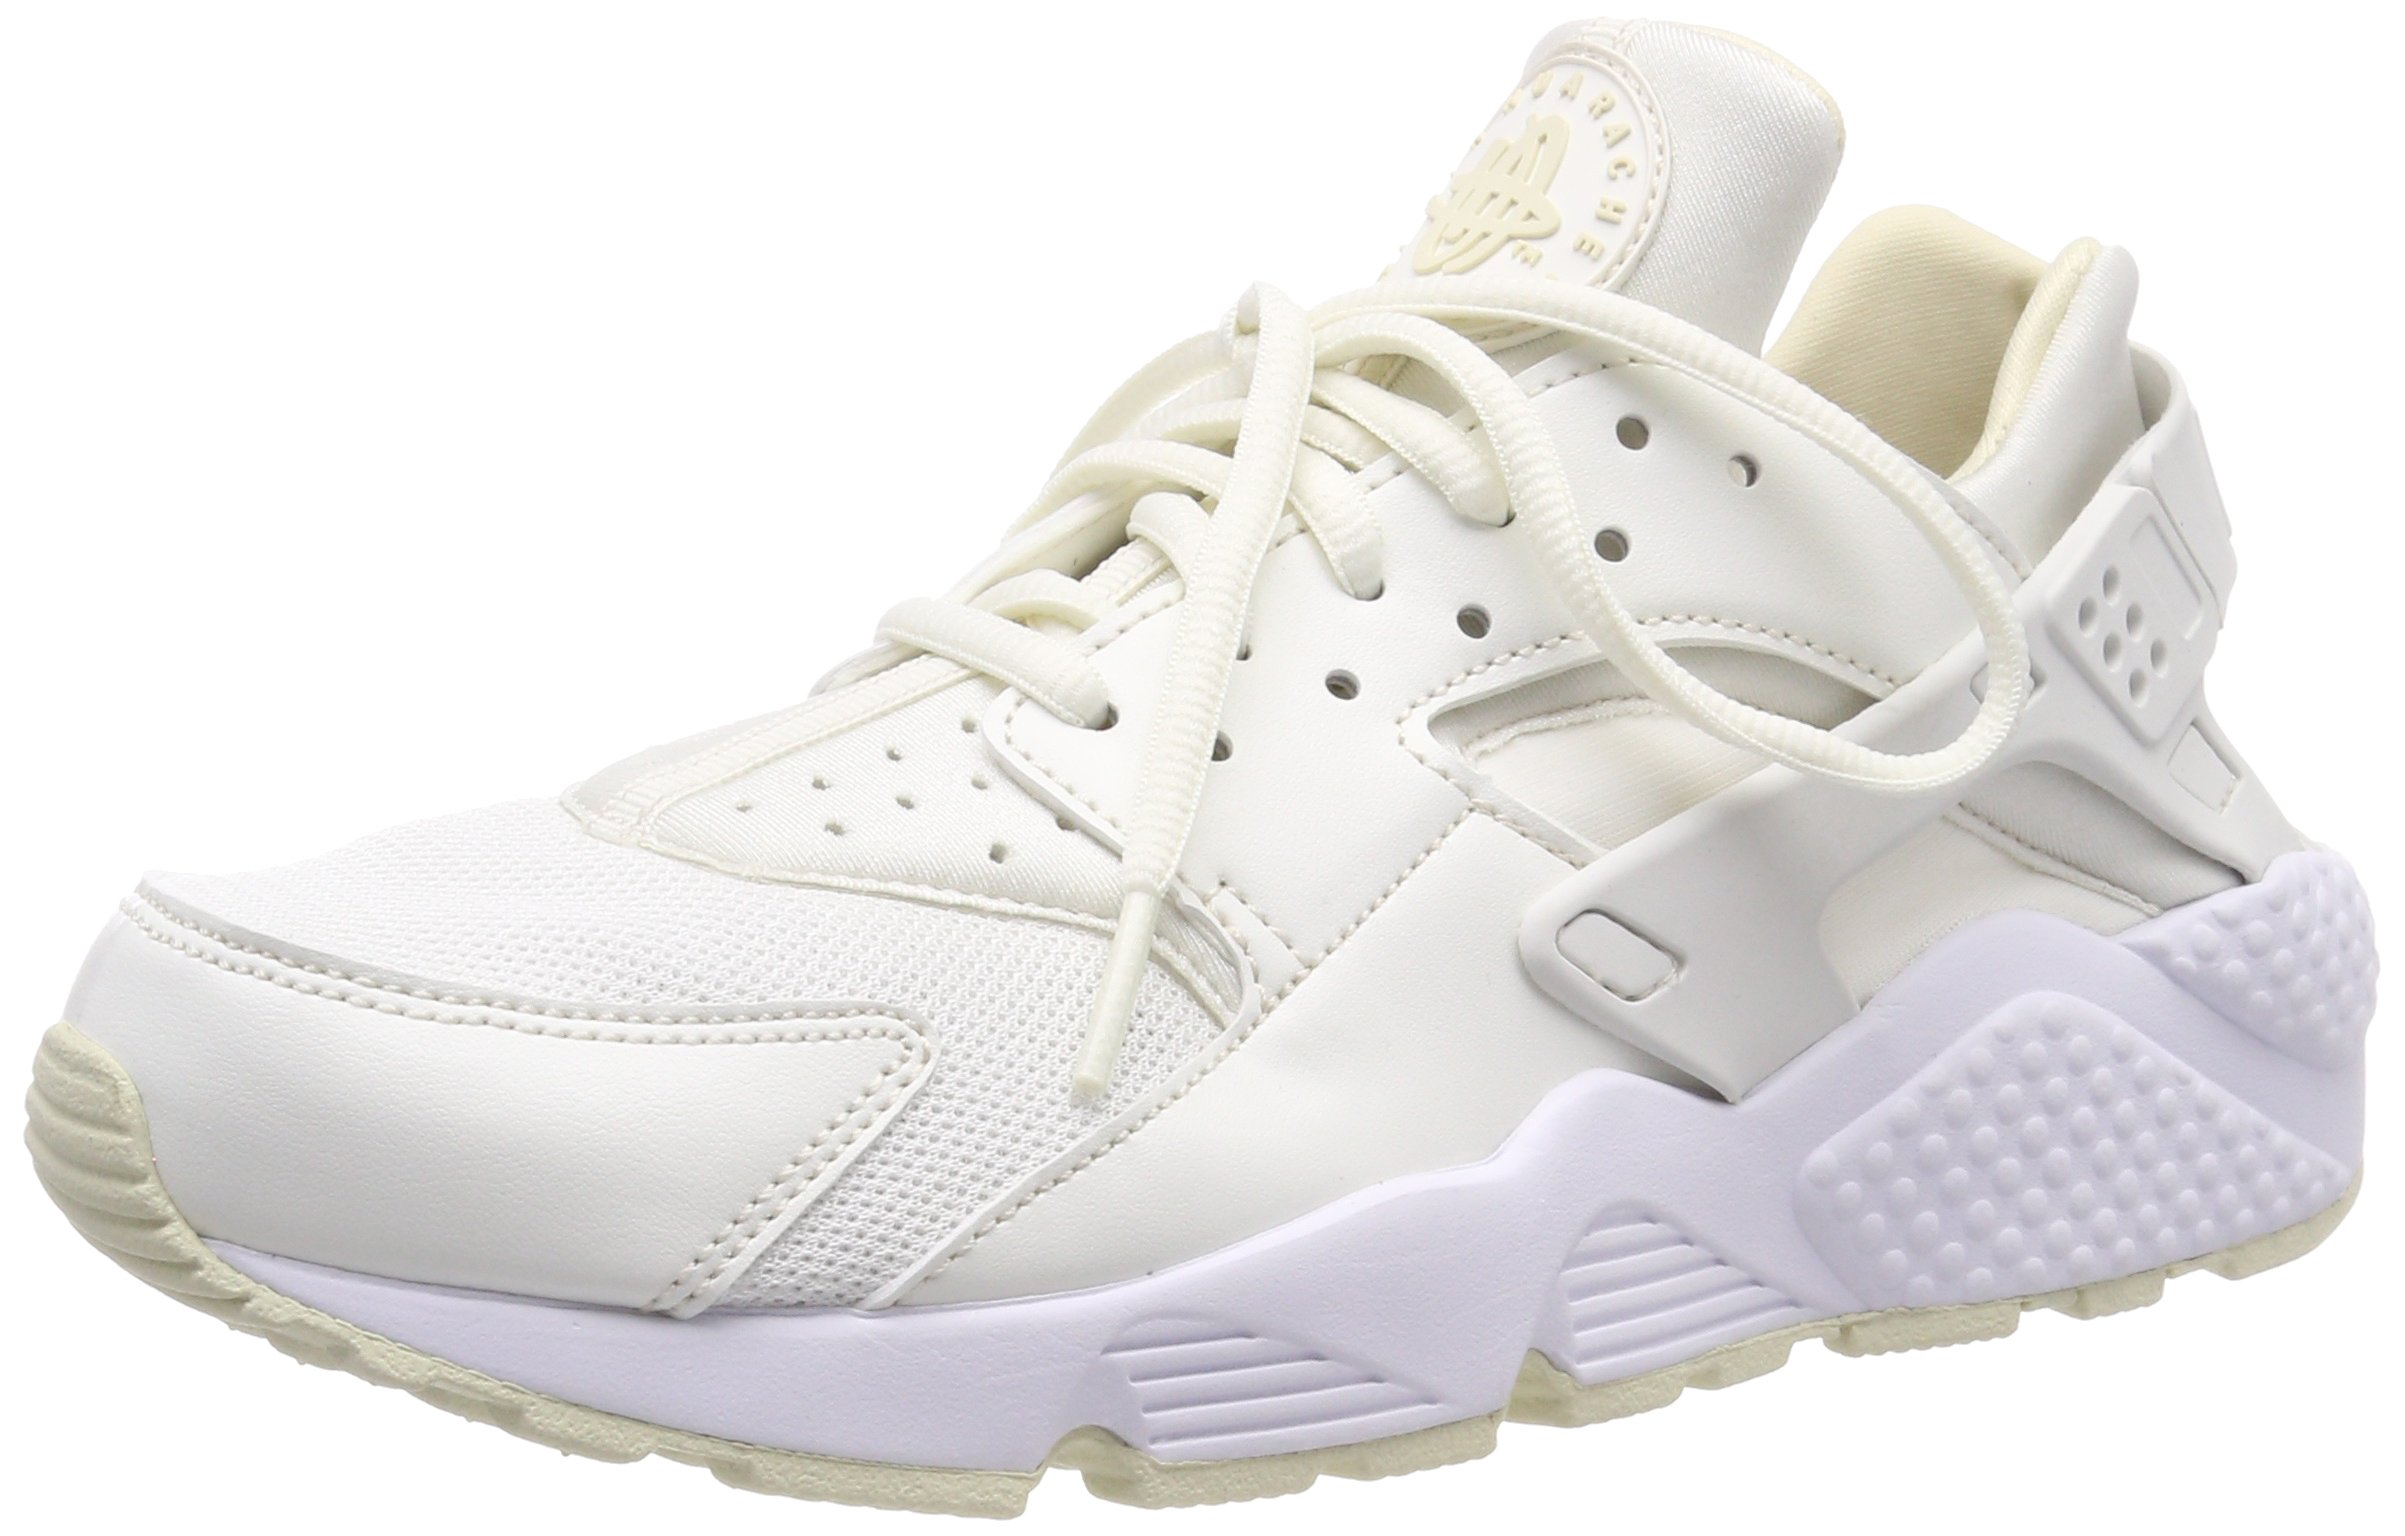 best cheap f1e5a 22340 Nike Air Huarache Women's Running Shoes Sail/Fossil/White 634835-115 (9  B(M) US)